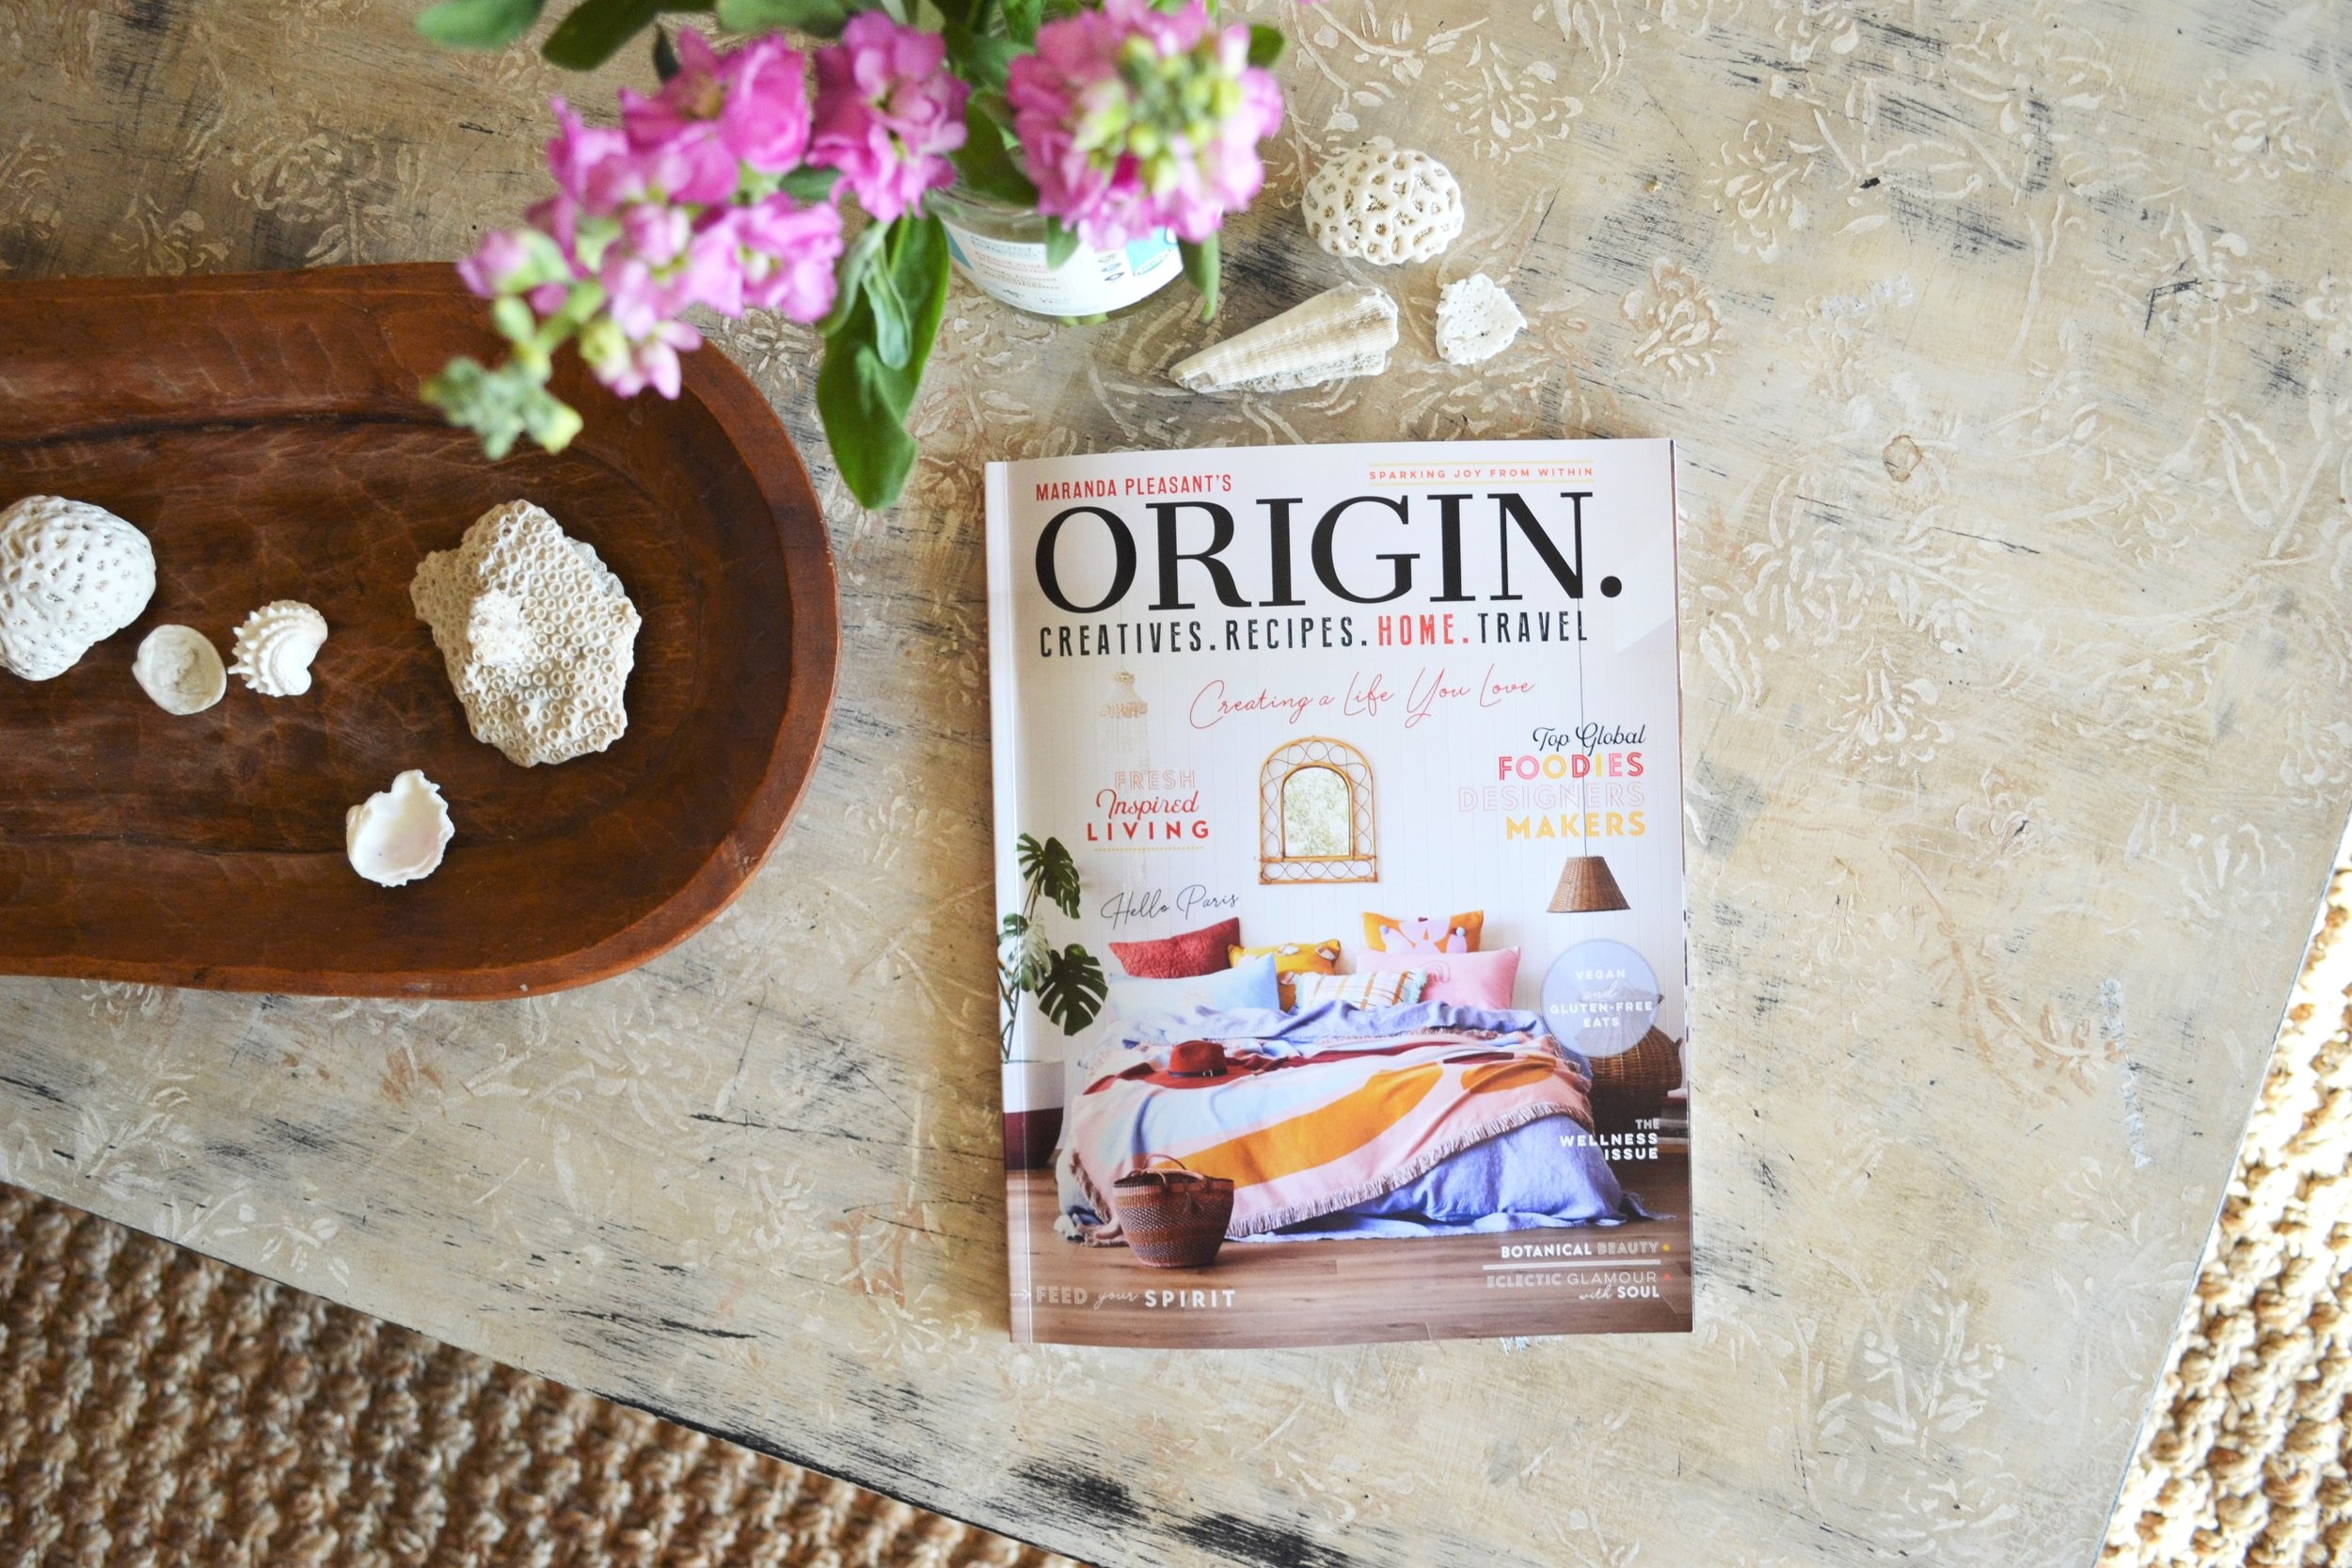 Making+Room+for+Peace+in+ORIGIN+Magazine